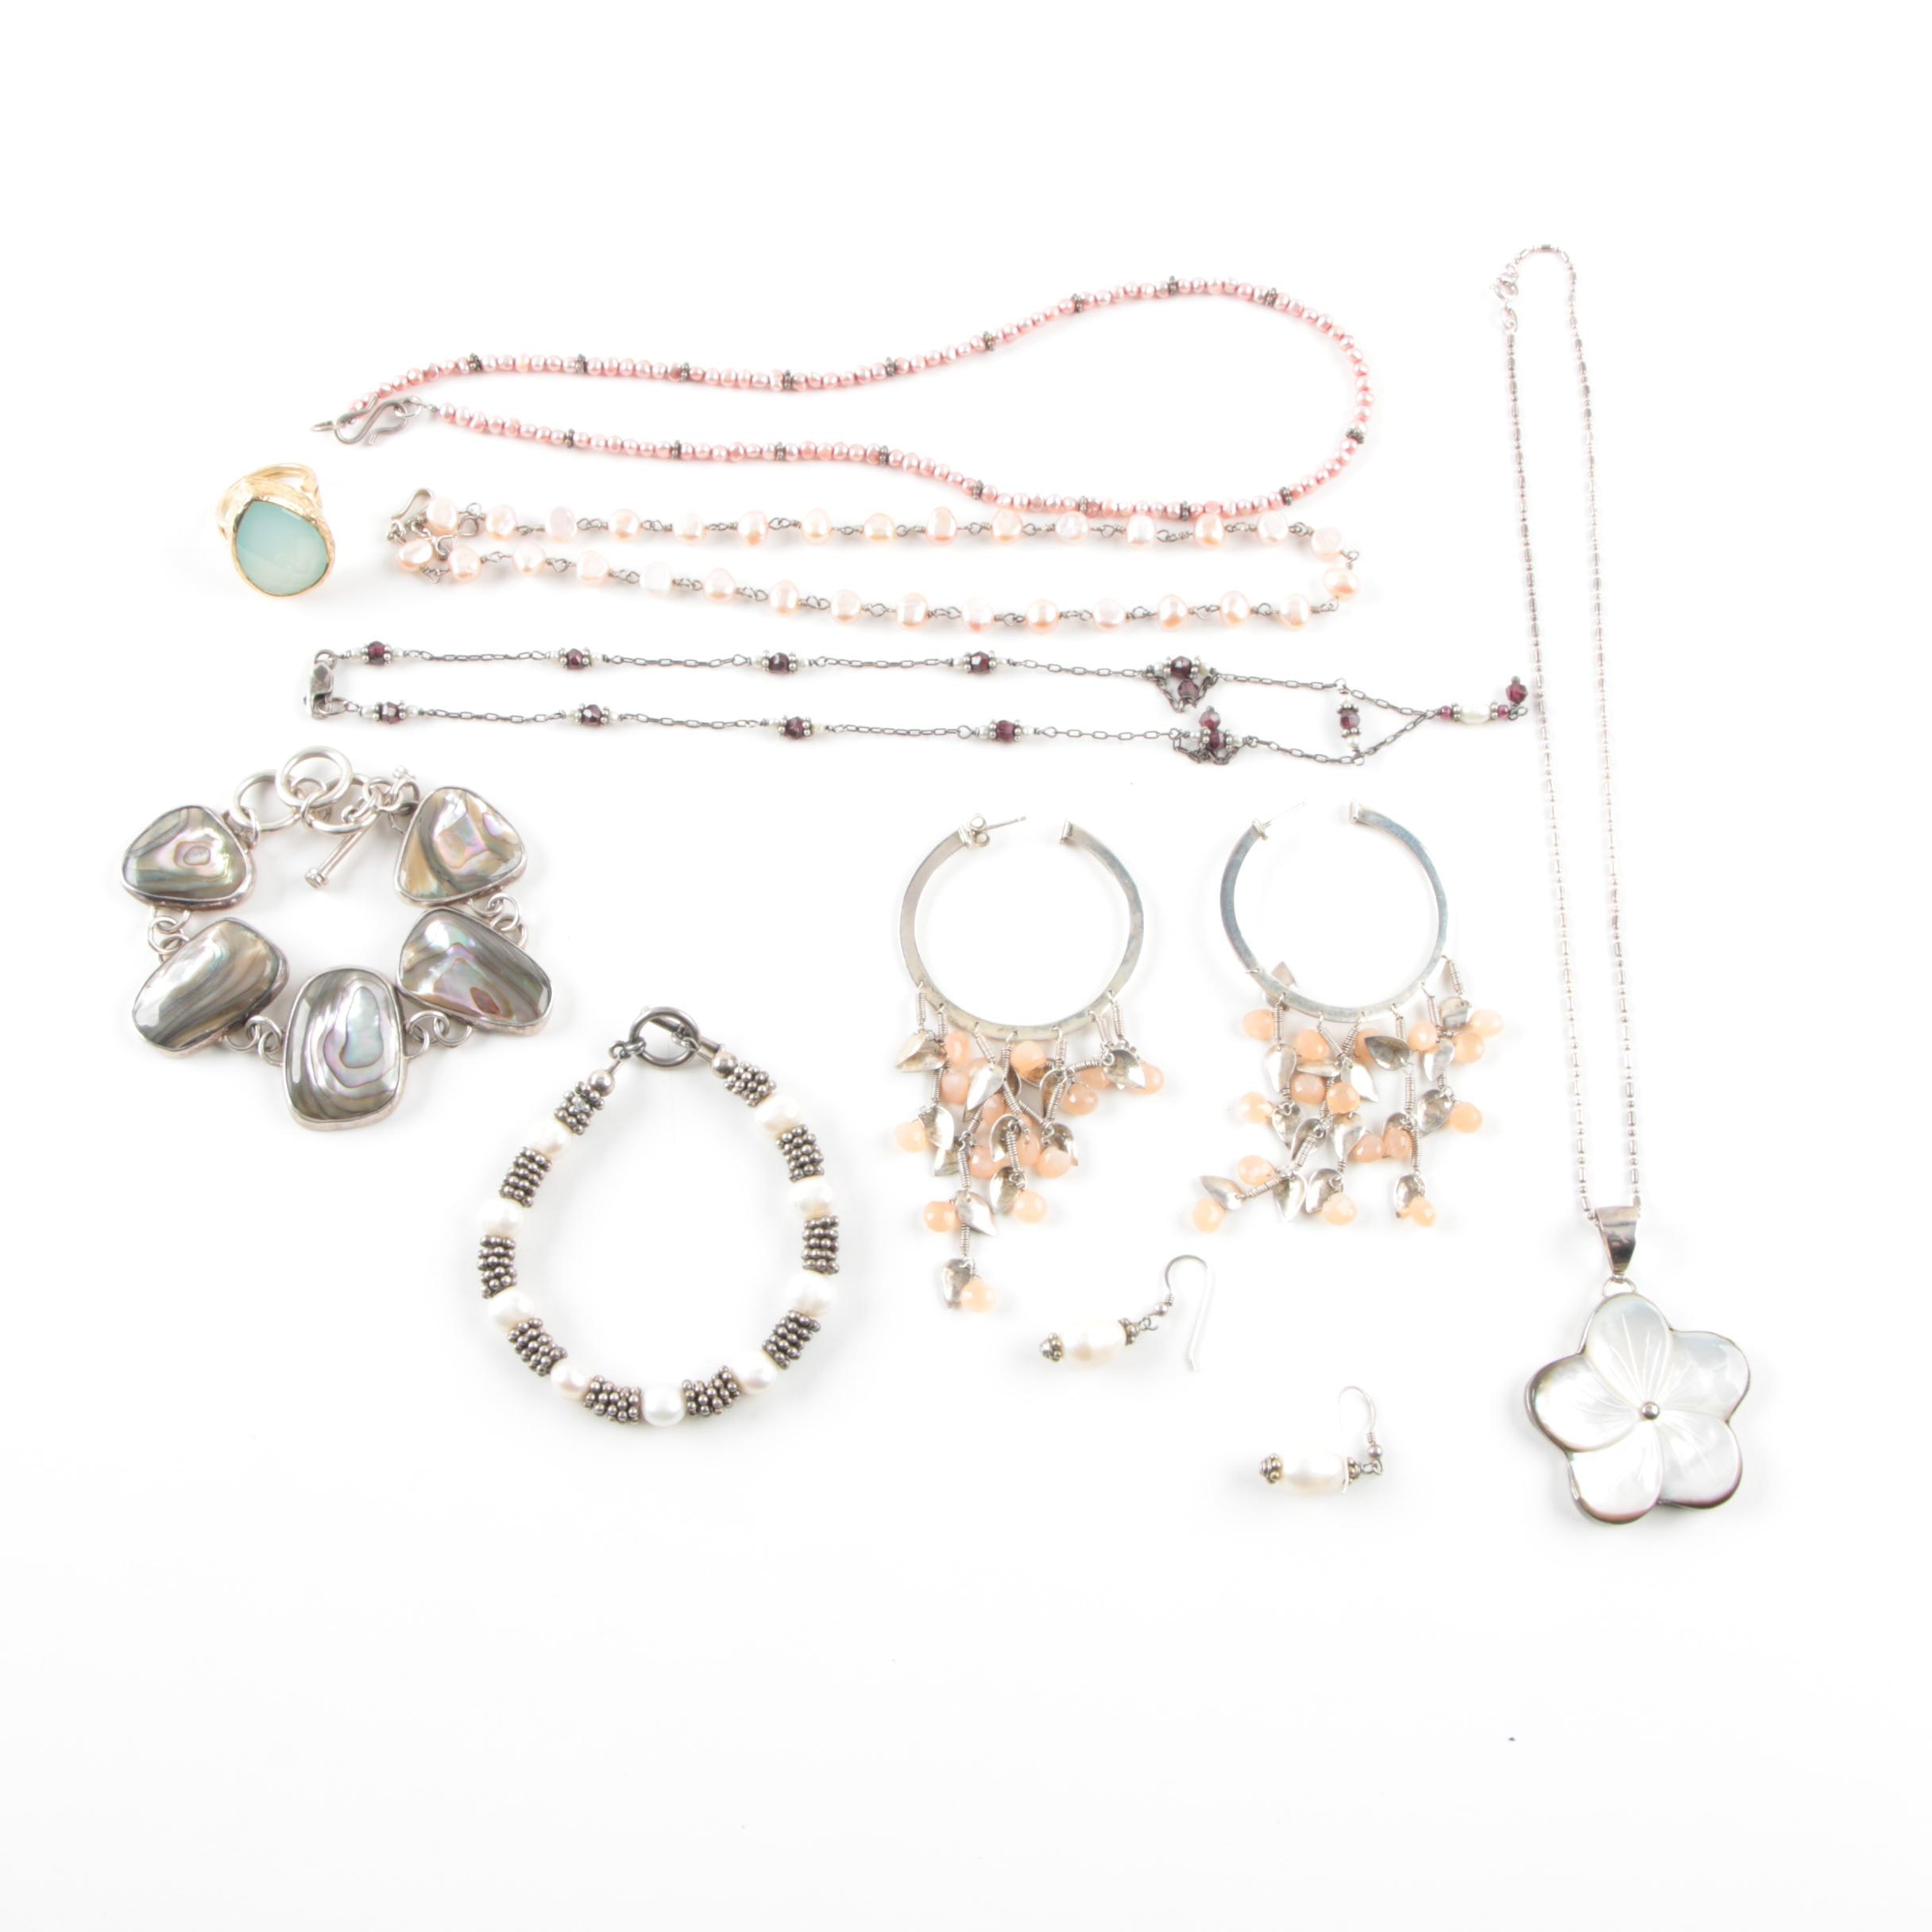 Sterling Silver and Gemstone Jewelry Including Abalone